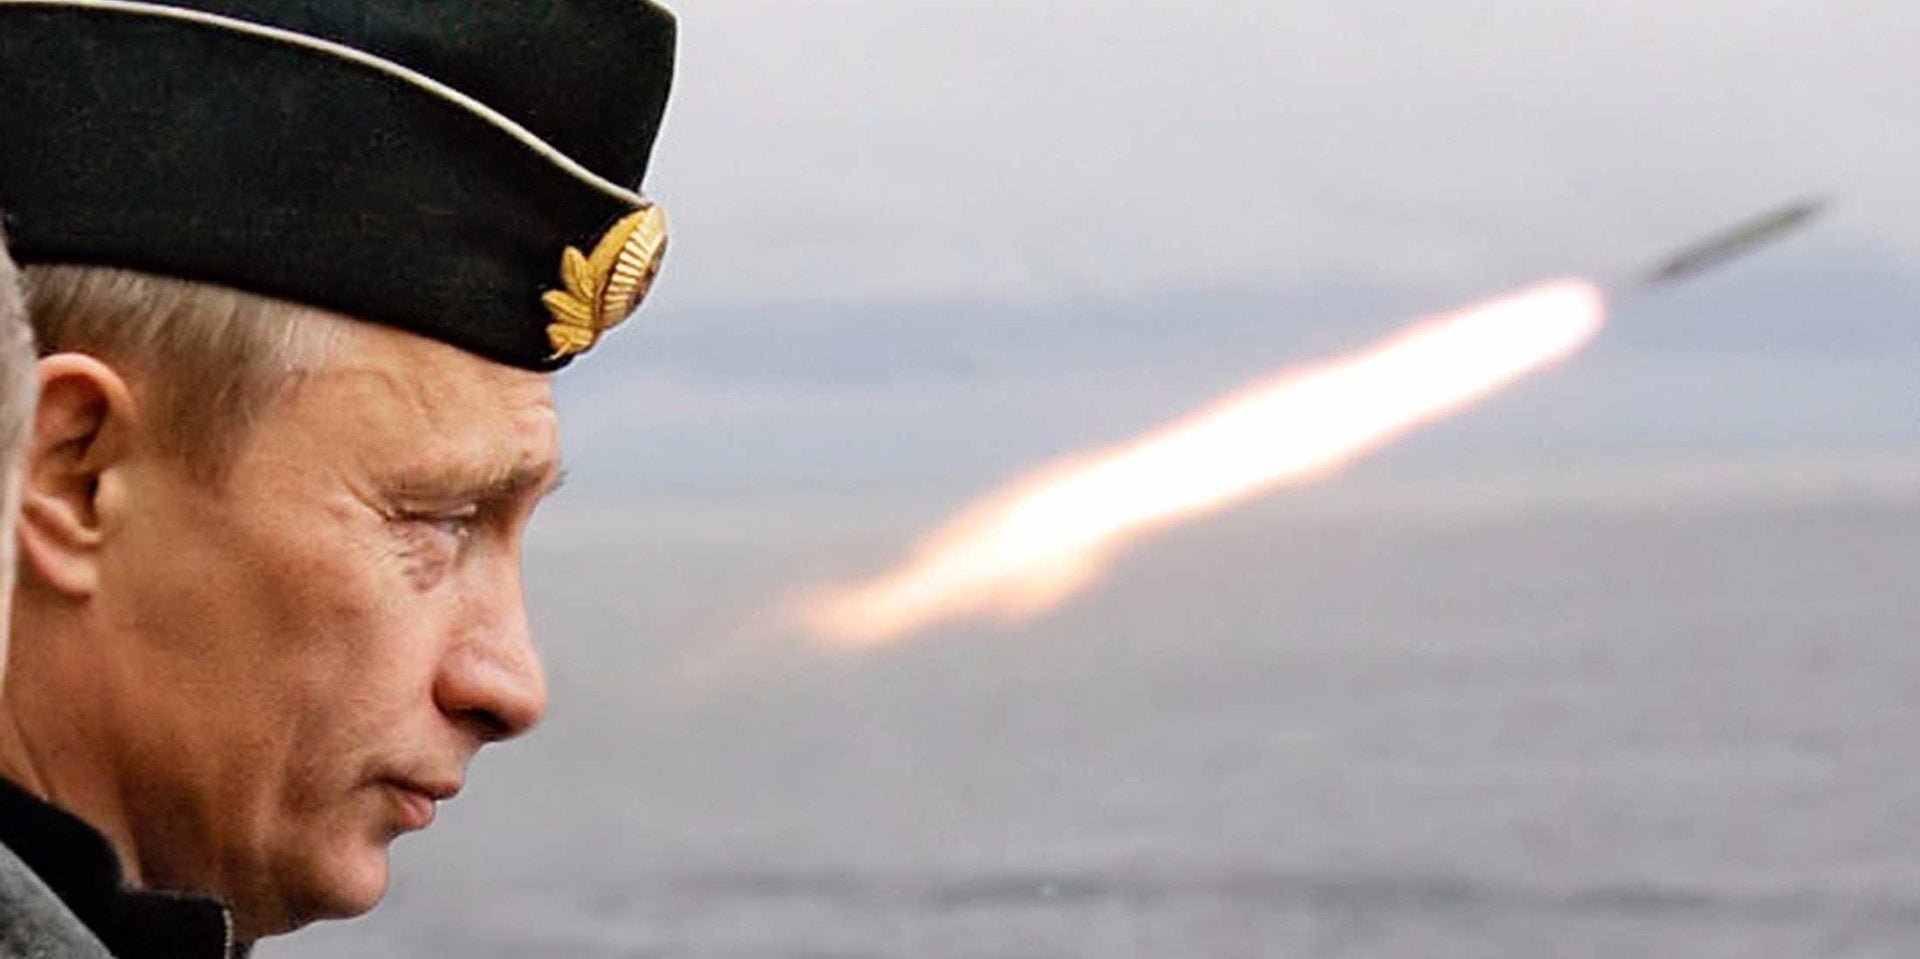 The US claims Russia has been secretly testing low-yield nukes to strengthen its arsenal